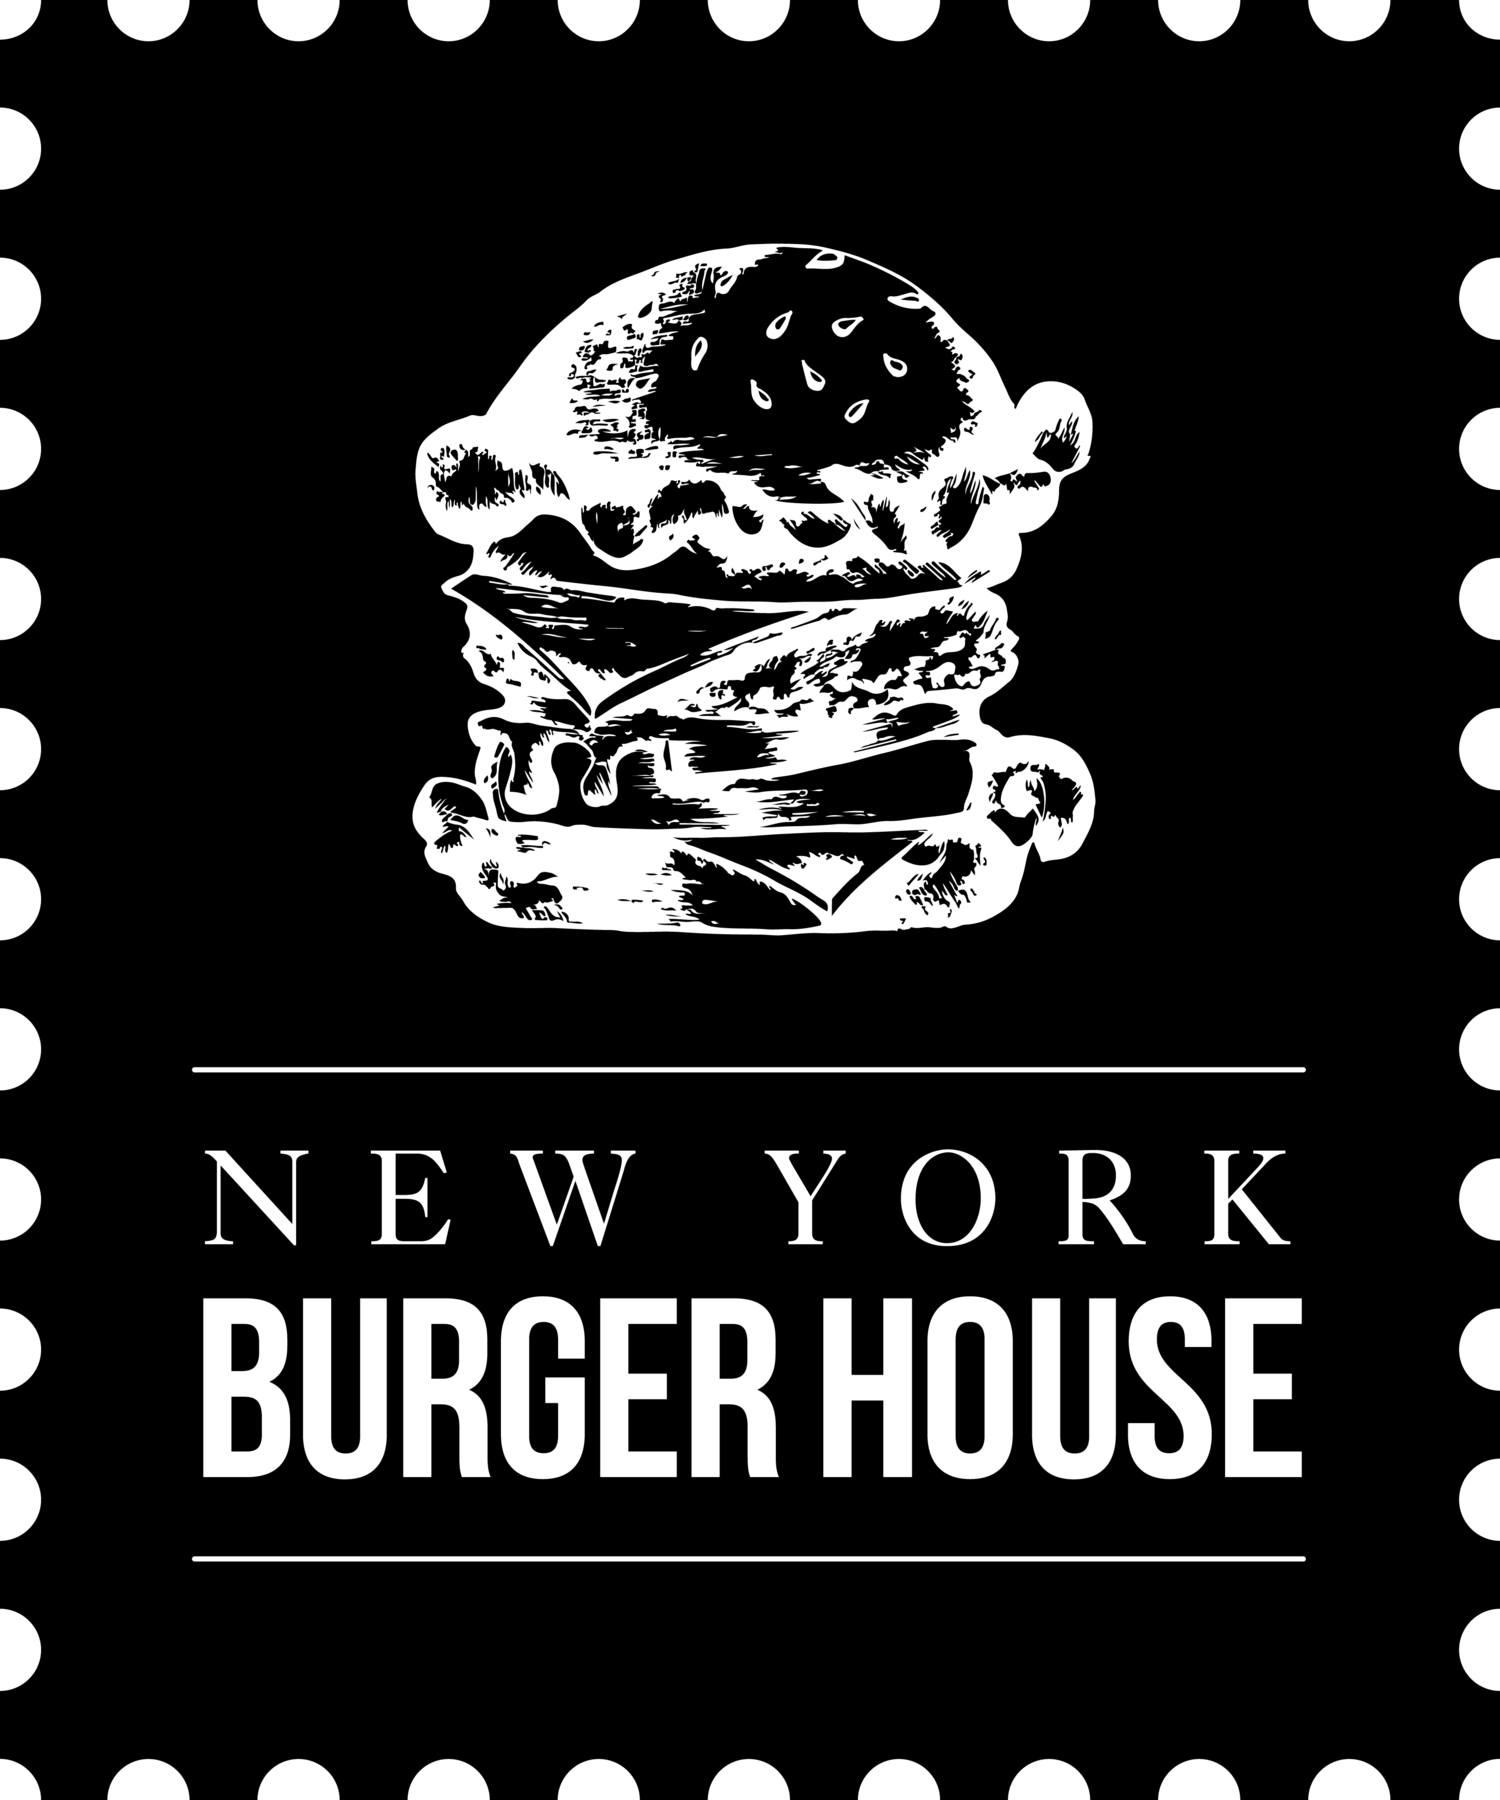 New York Burger House